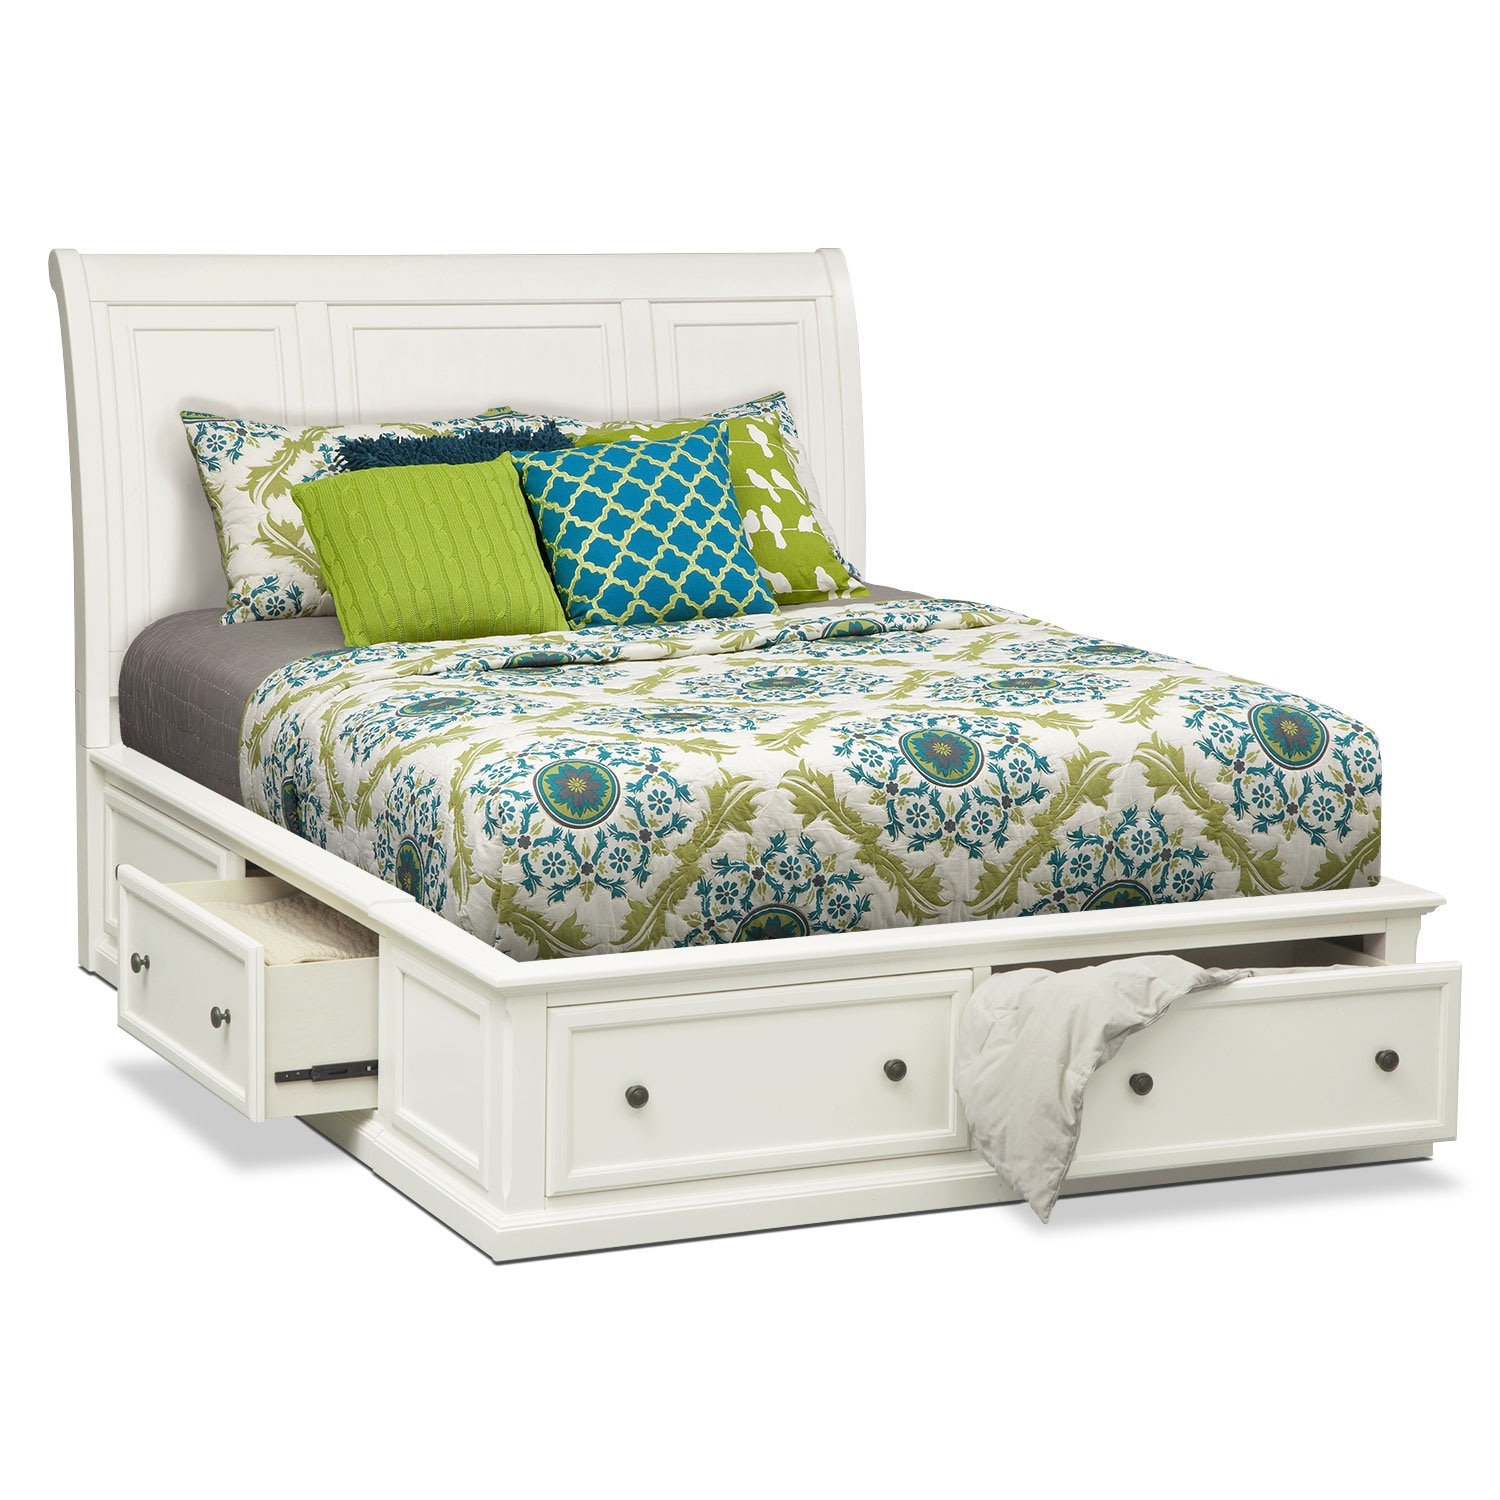 Hanover king storage bed white value city furniture for Bedroom furniture beds